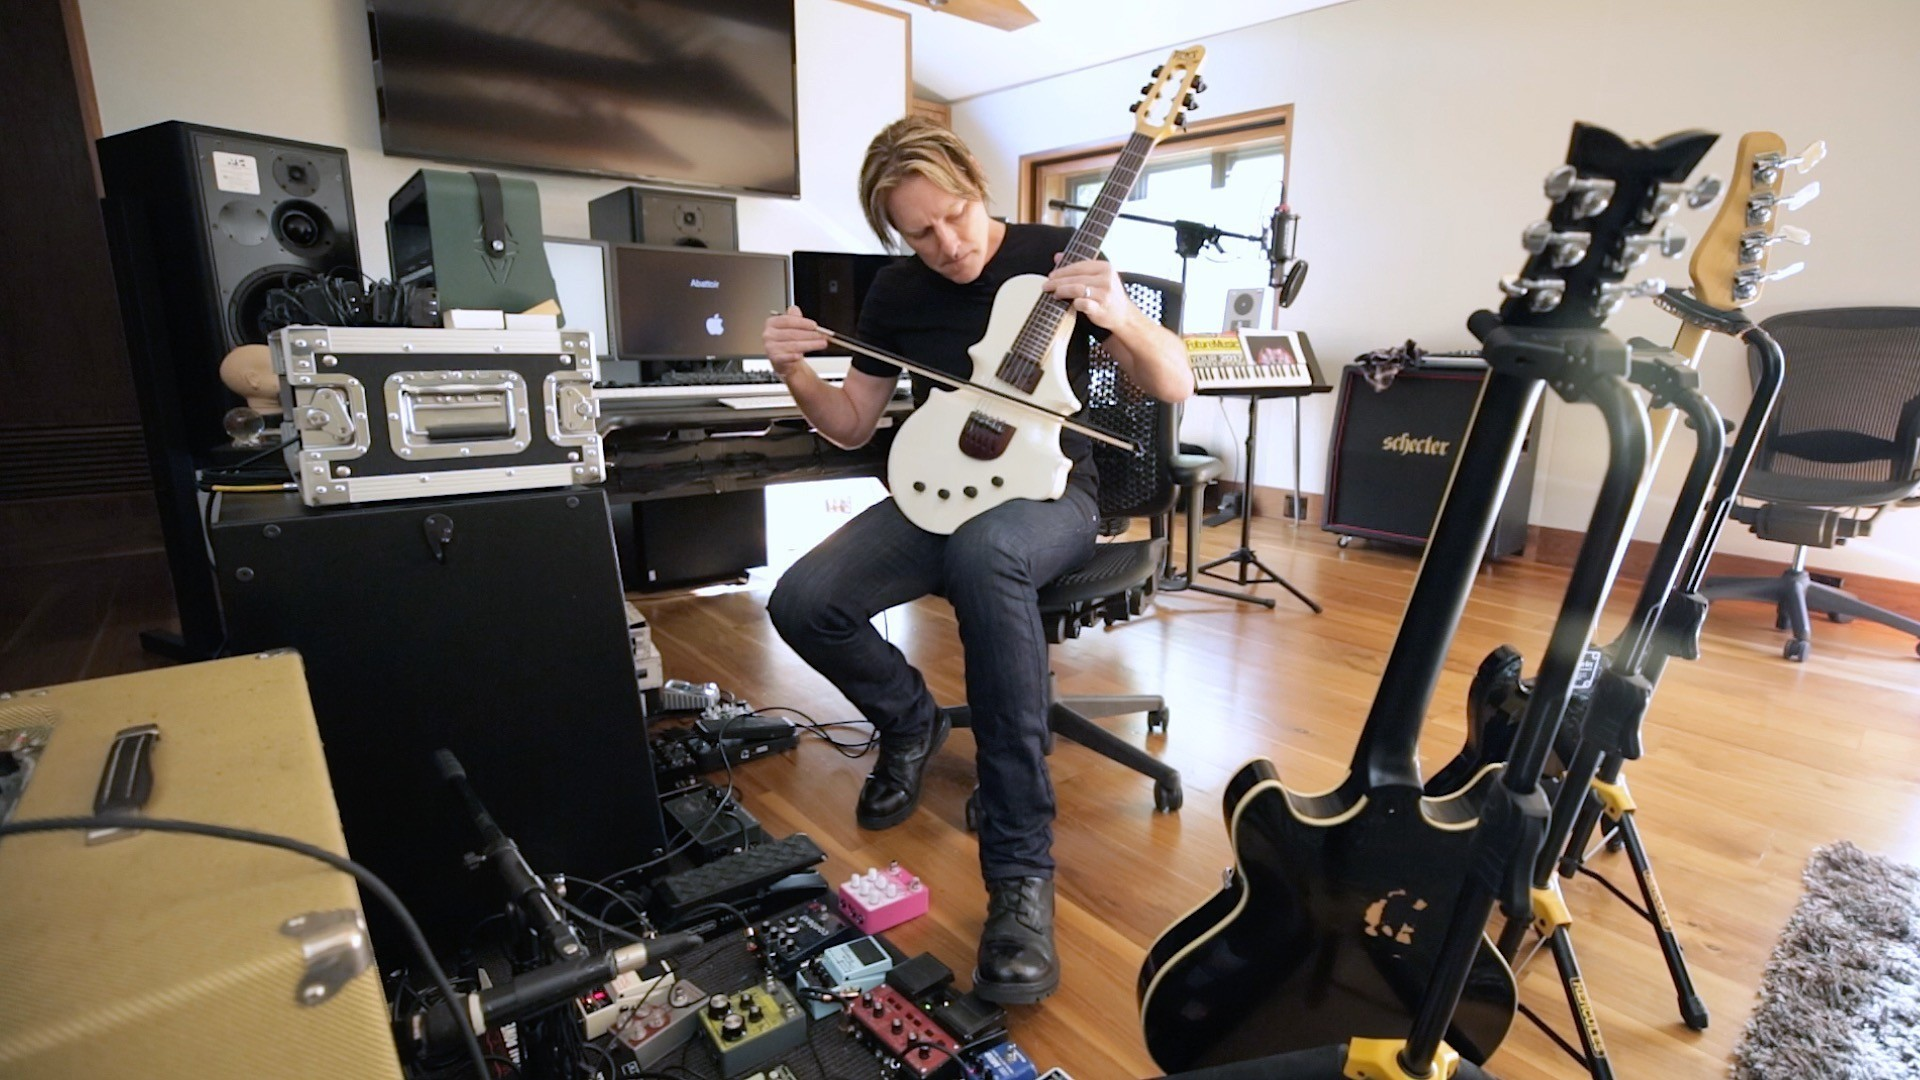 Composer Tyler Bates demonstrates the GuitarViol